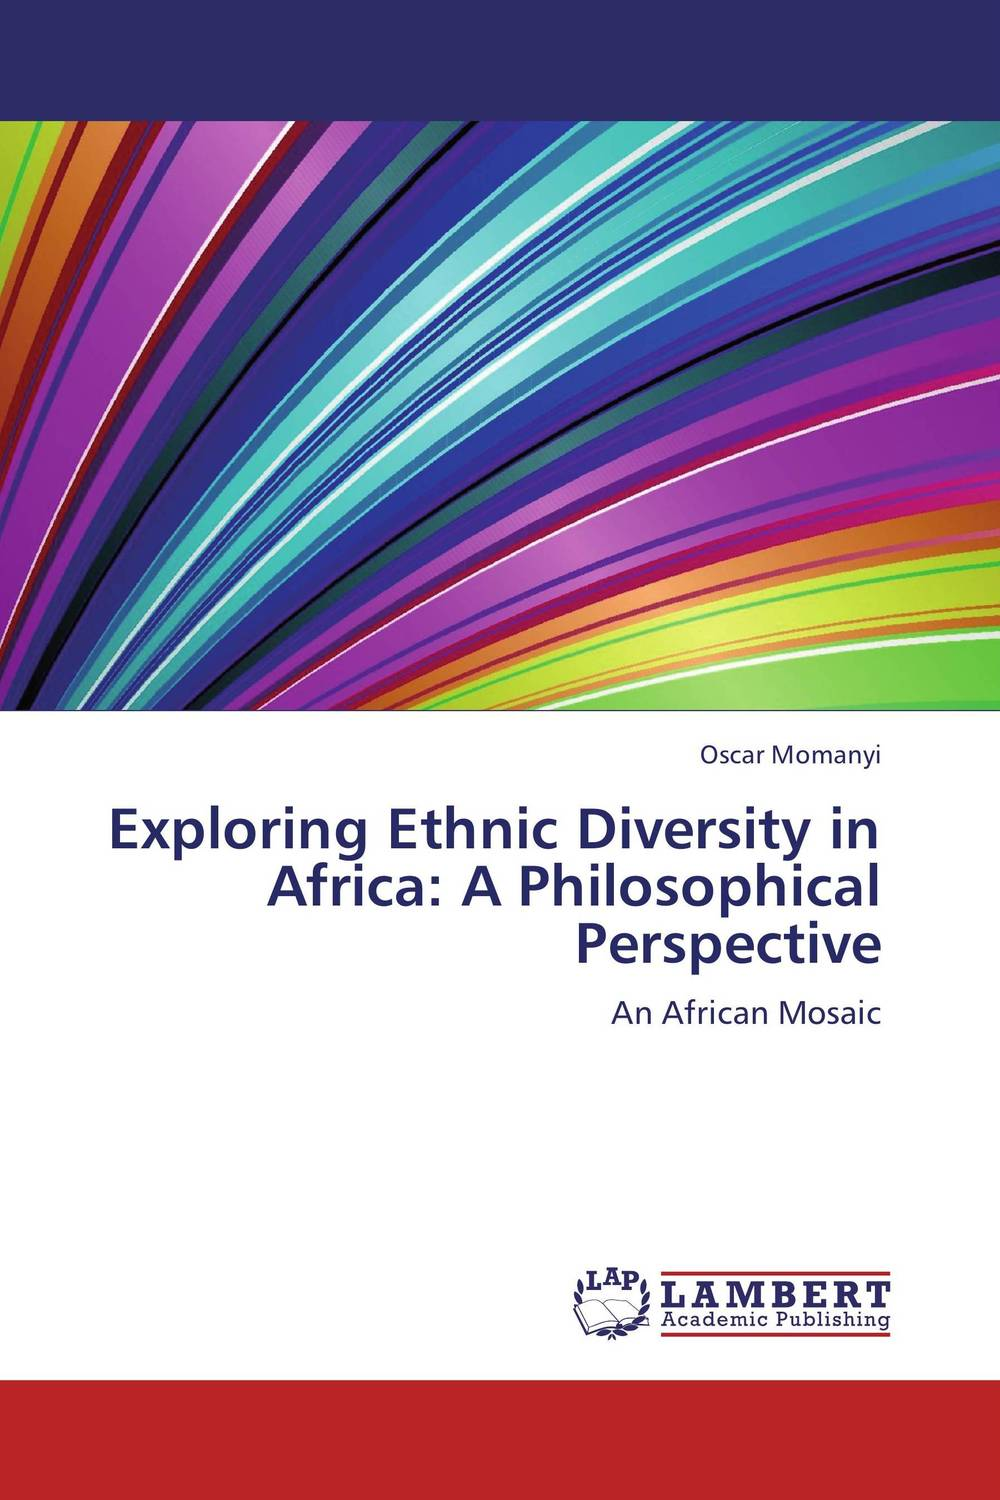 Exploring Ethnic Diversity in Africa: A Philosophical Perspective